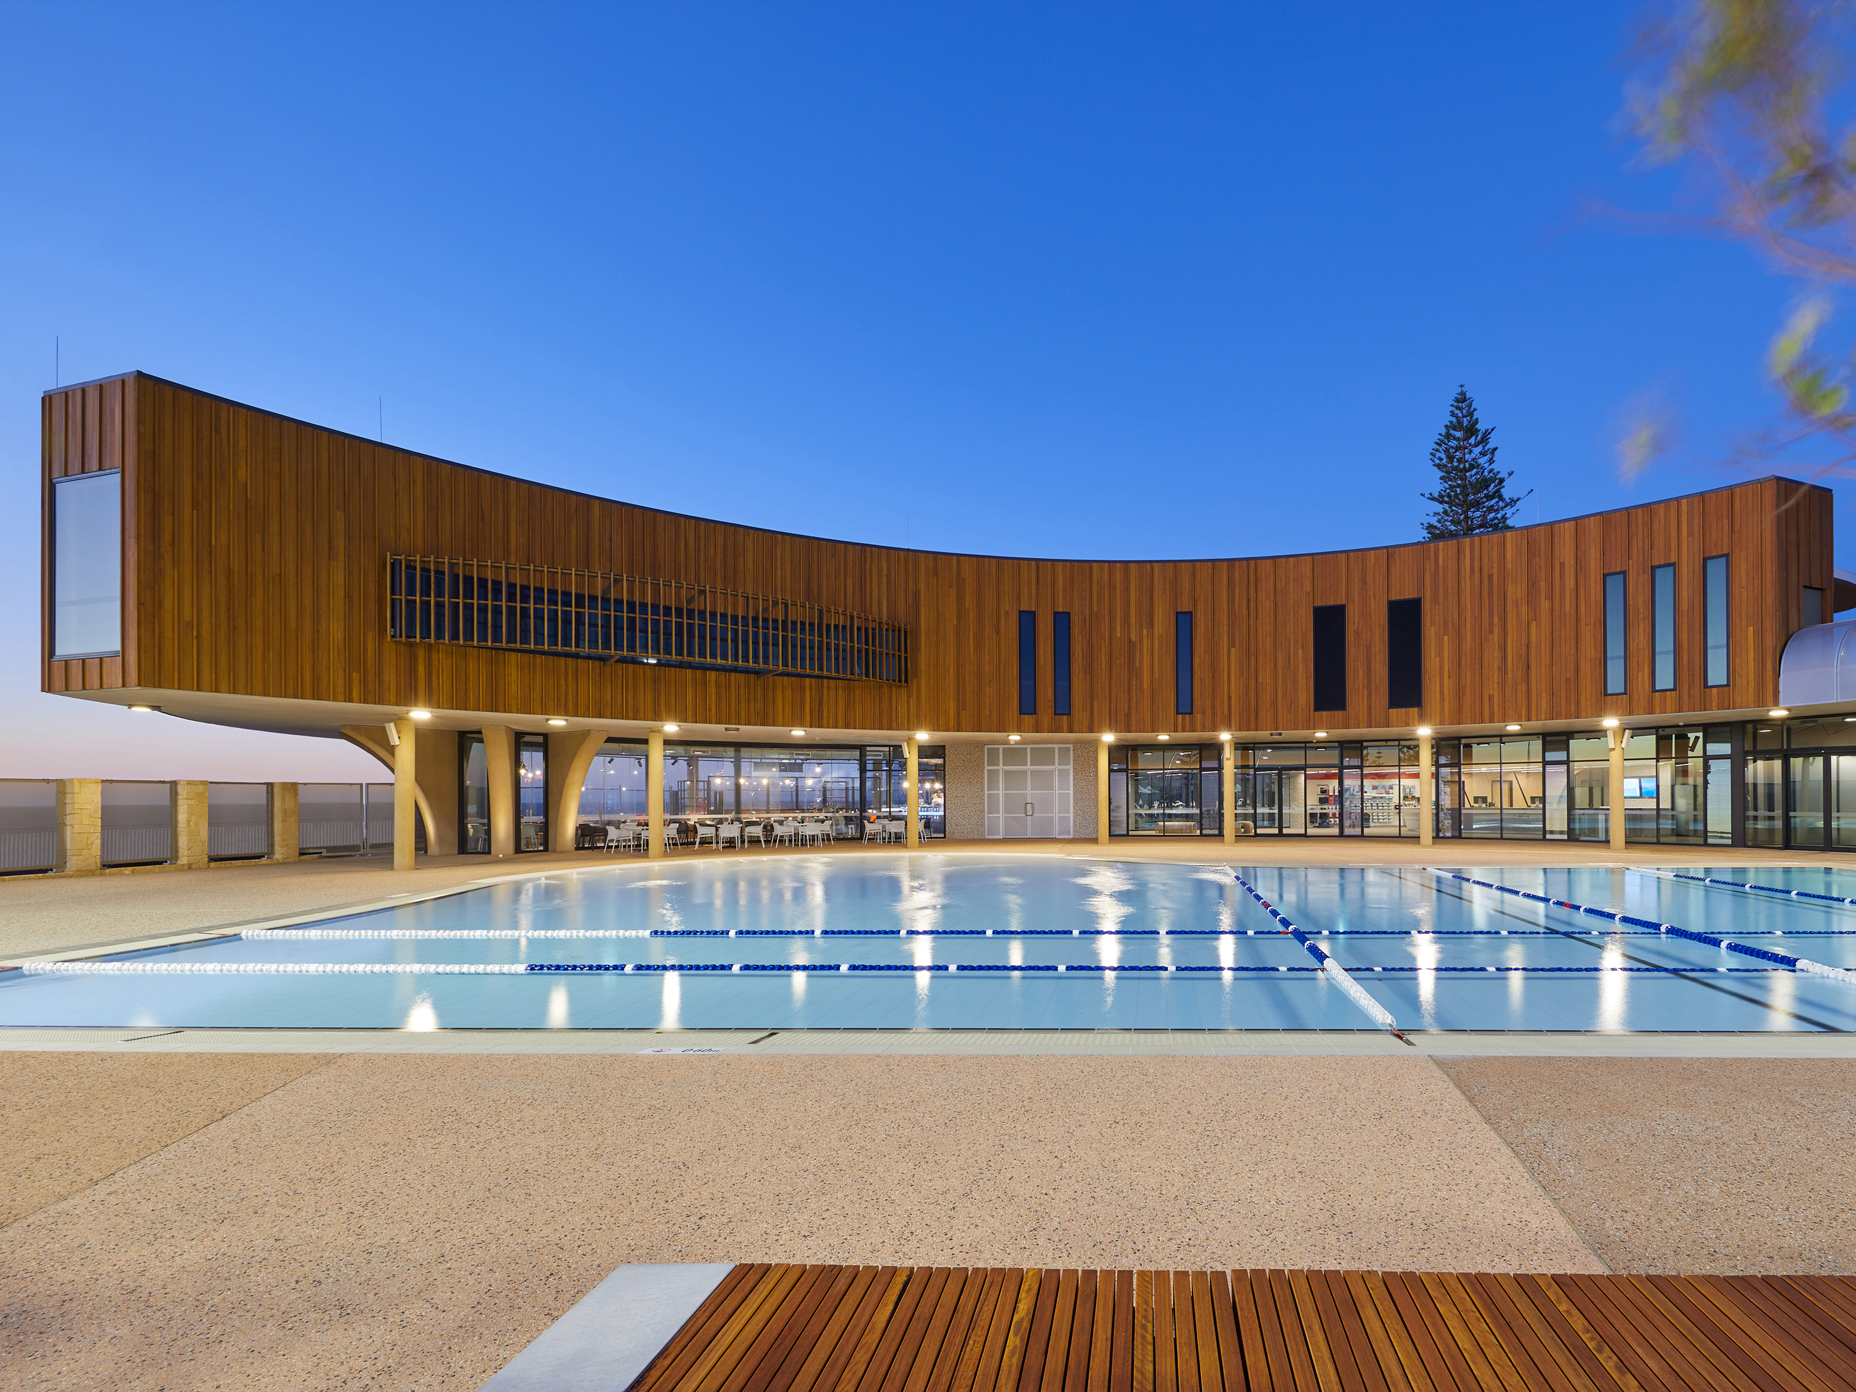 Scarborough Beach Pool: a place immersed in its landscape